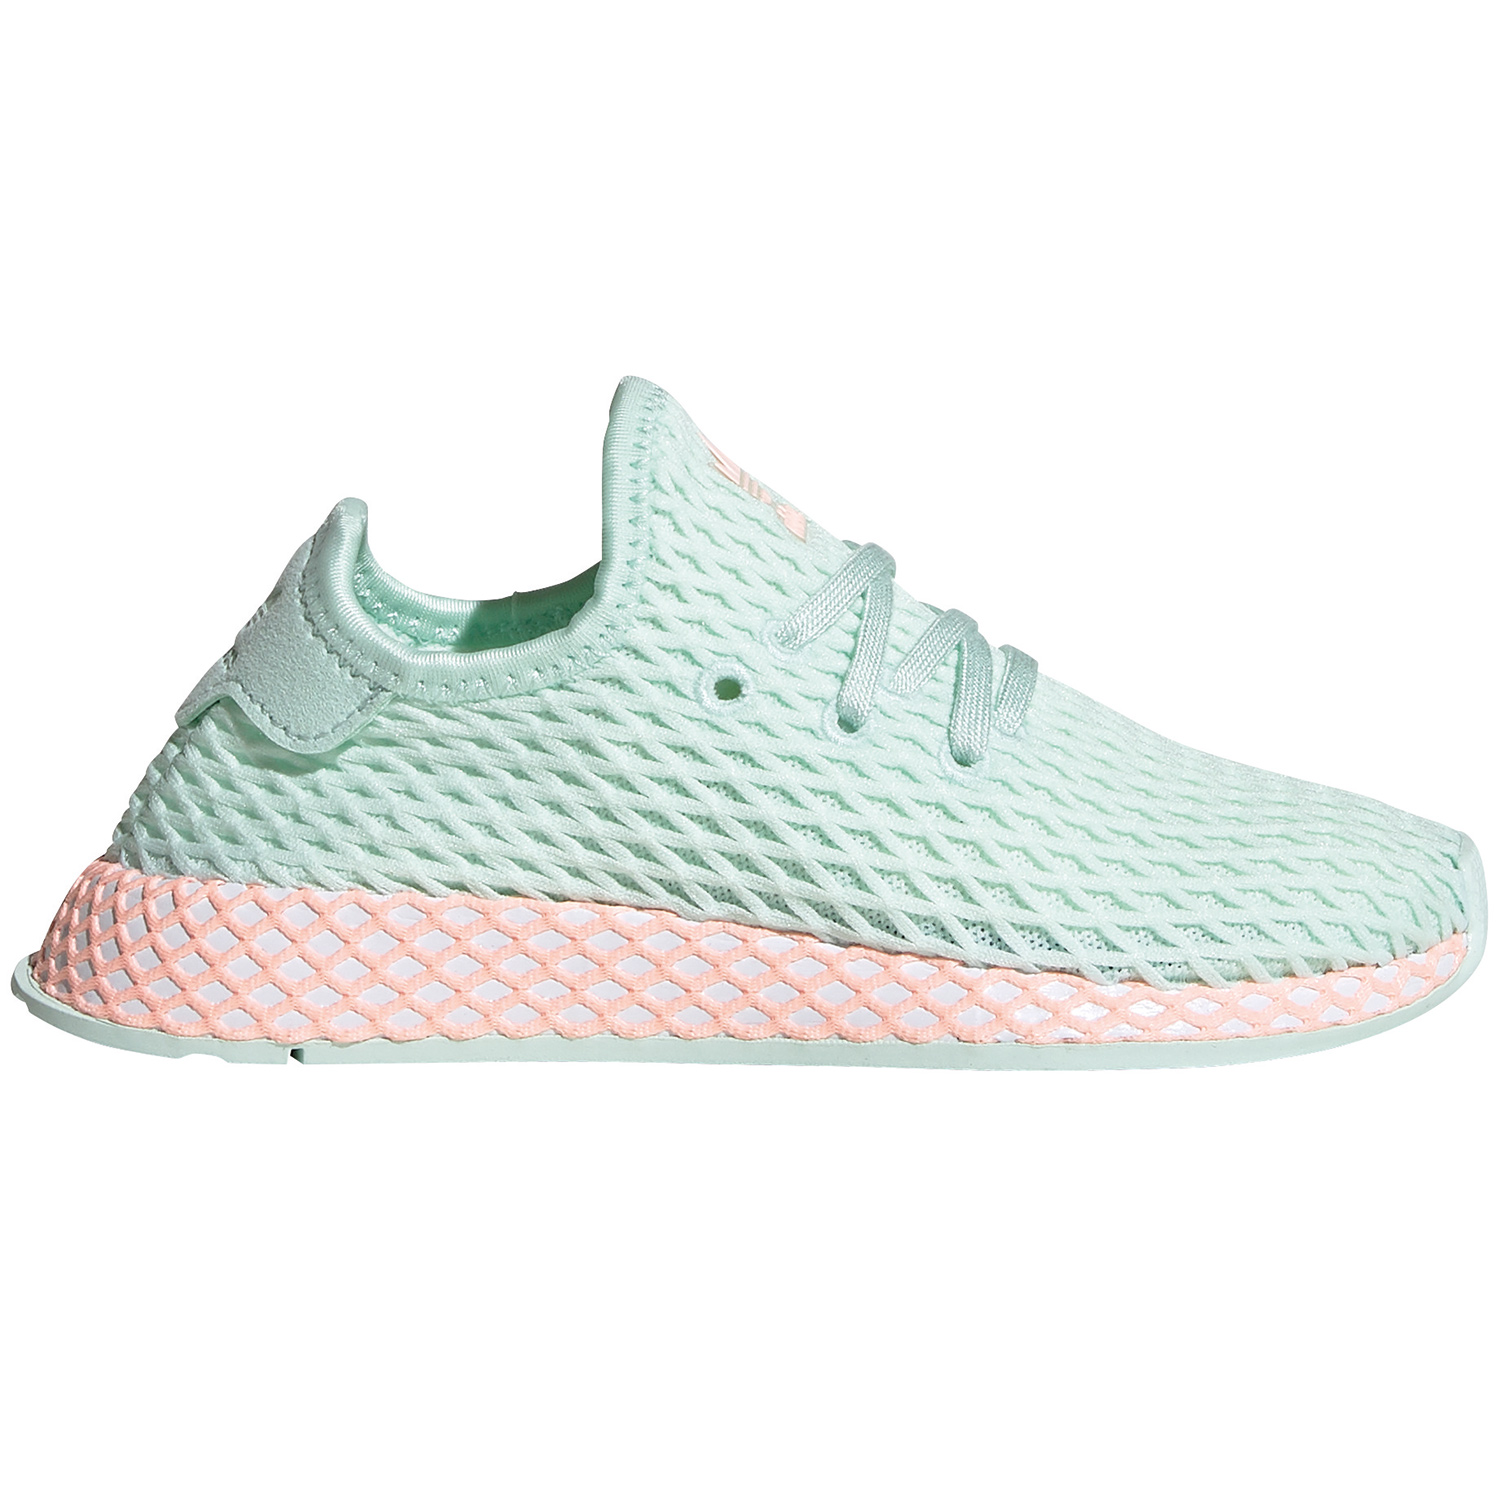 adidas Originals Deerupt Runner C Kinder Sneaker mint CG6851 | Schuhroom.de